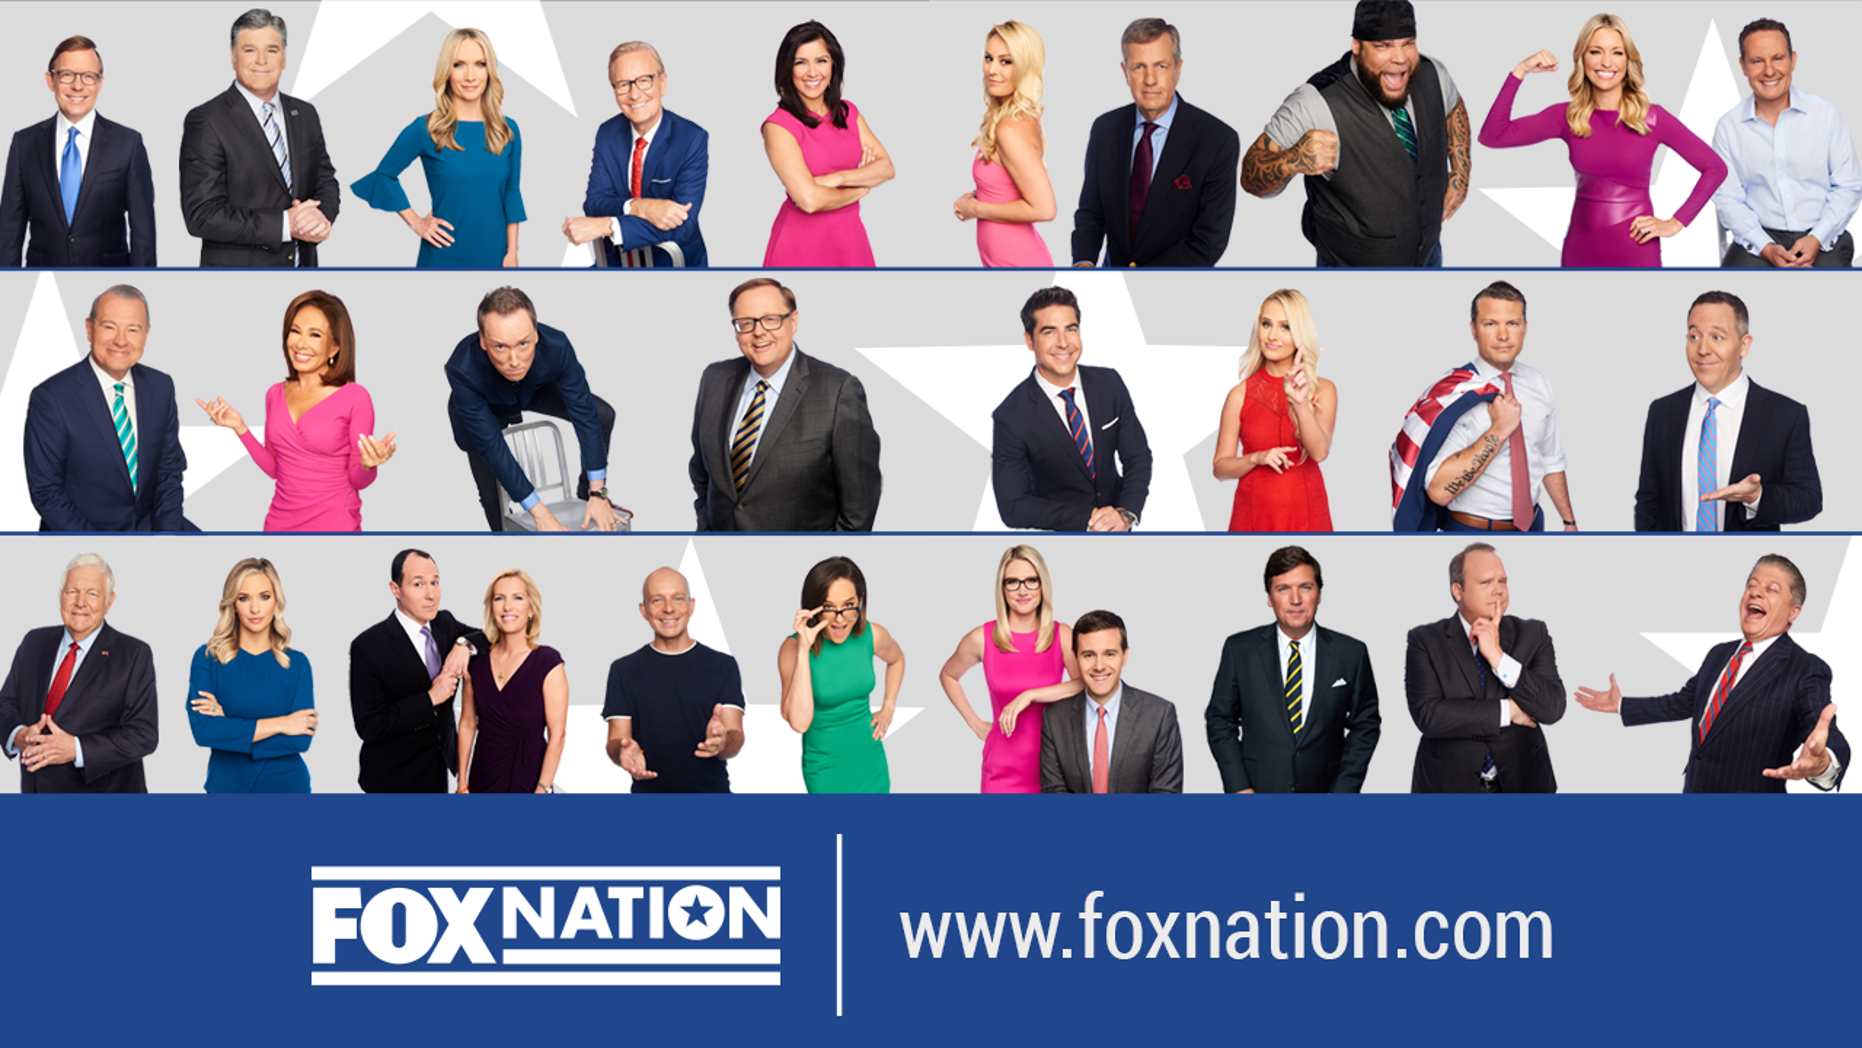 Fox Nation will launch later this year with content from many of Fox News Channel's biggest stars.